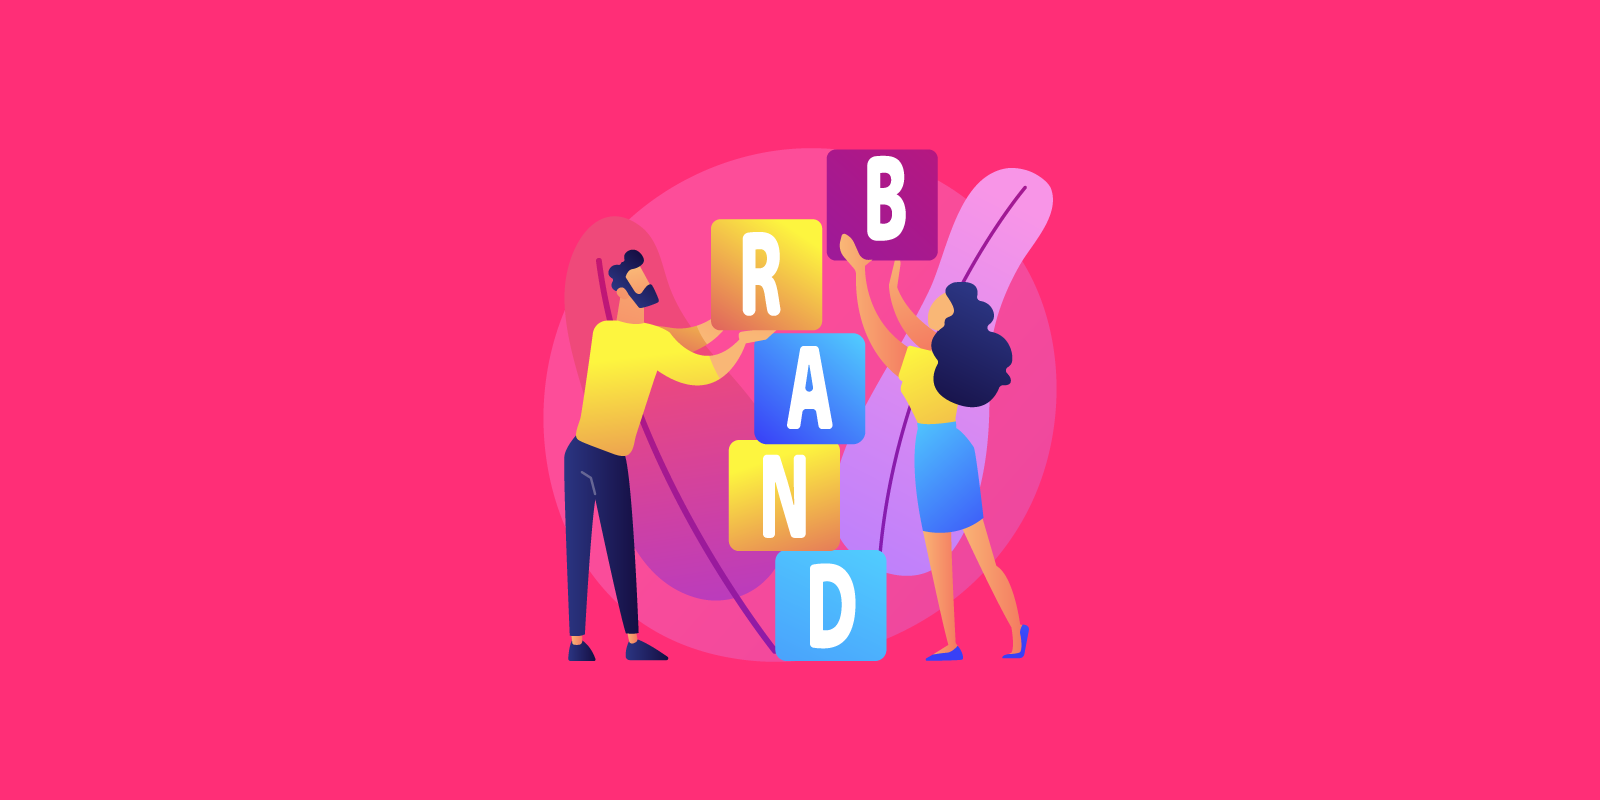 15 Unique Ways to Market Your Brand